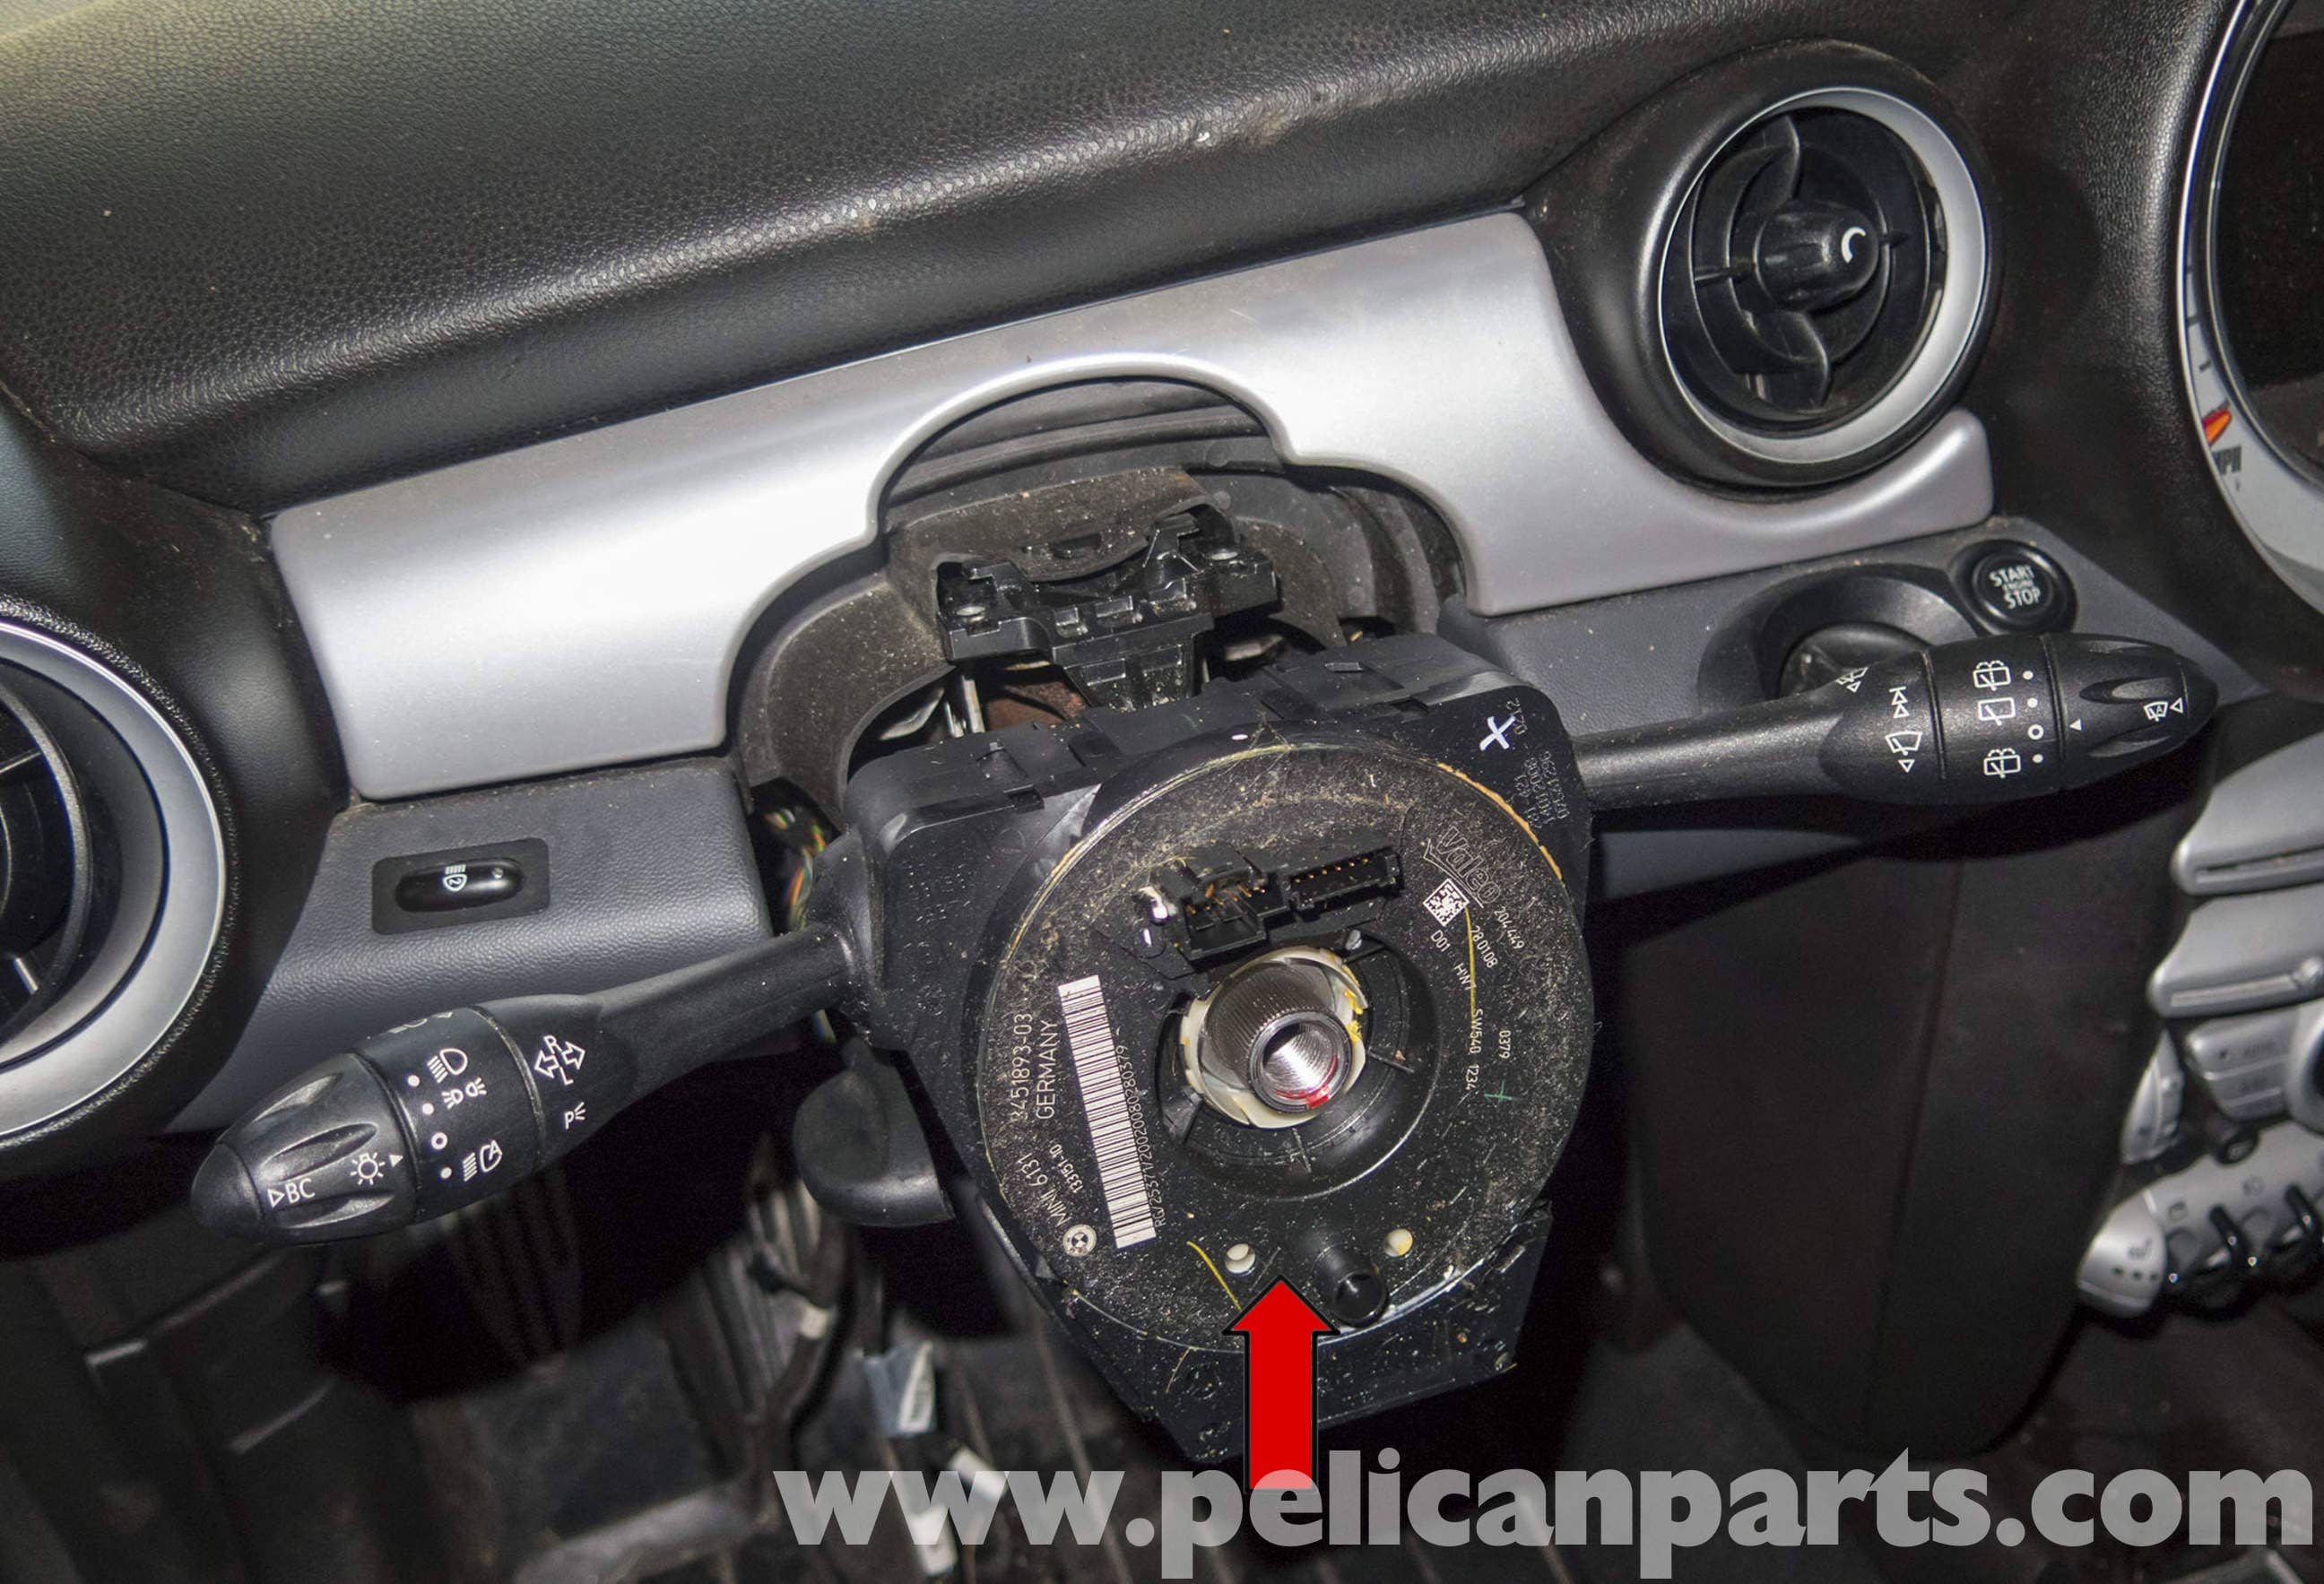 mini cooper r56 airbag system overview 2007 2011 pelican parts large image extra large image